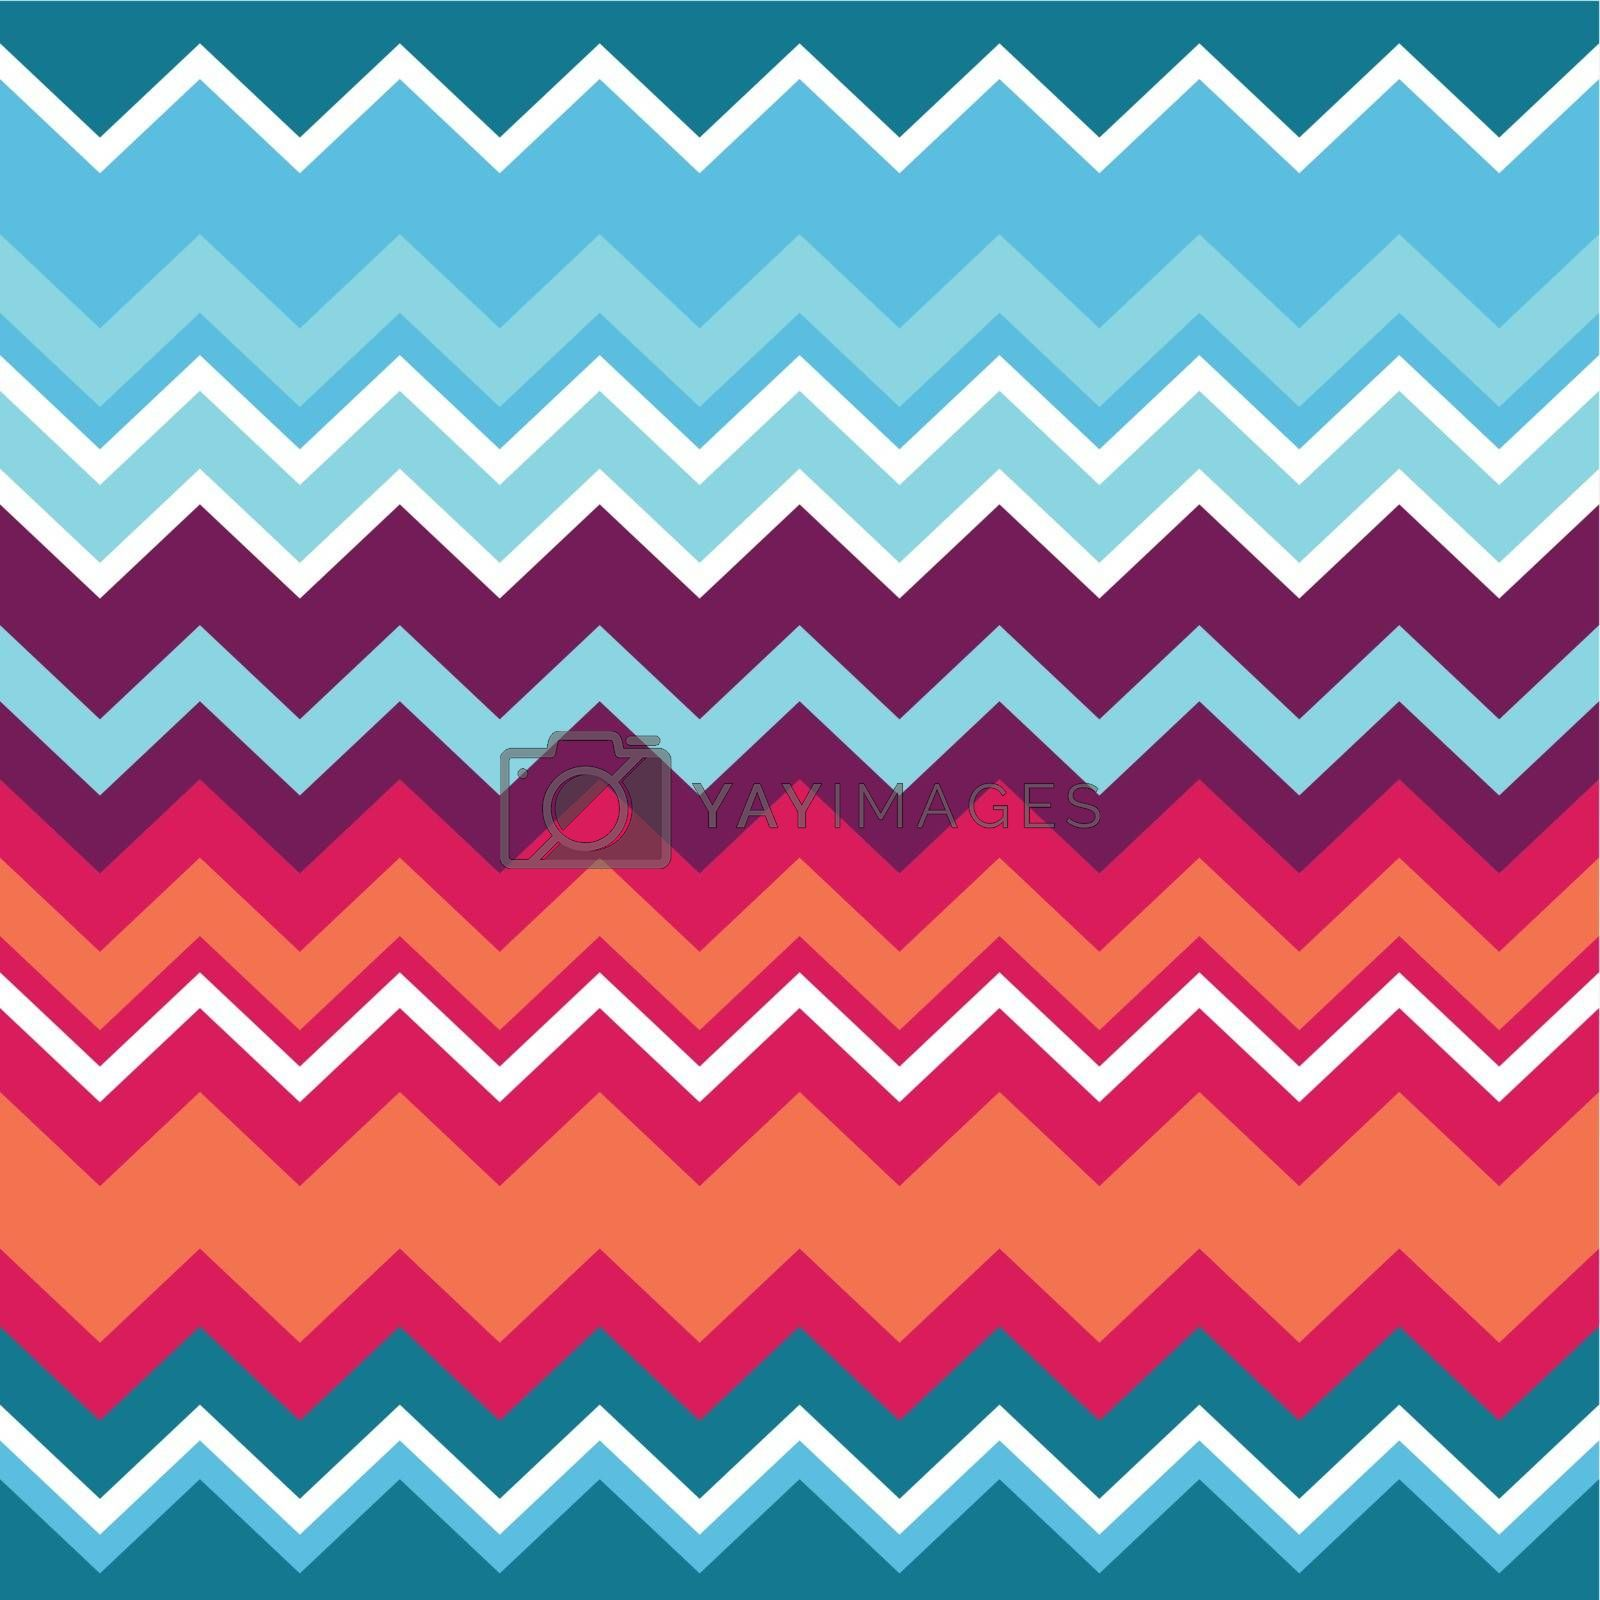 Vector seamless aztec ornament, ethnic pattern in blue, red and orange